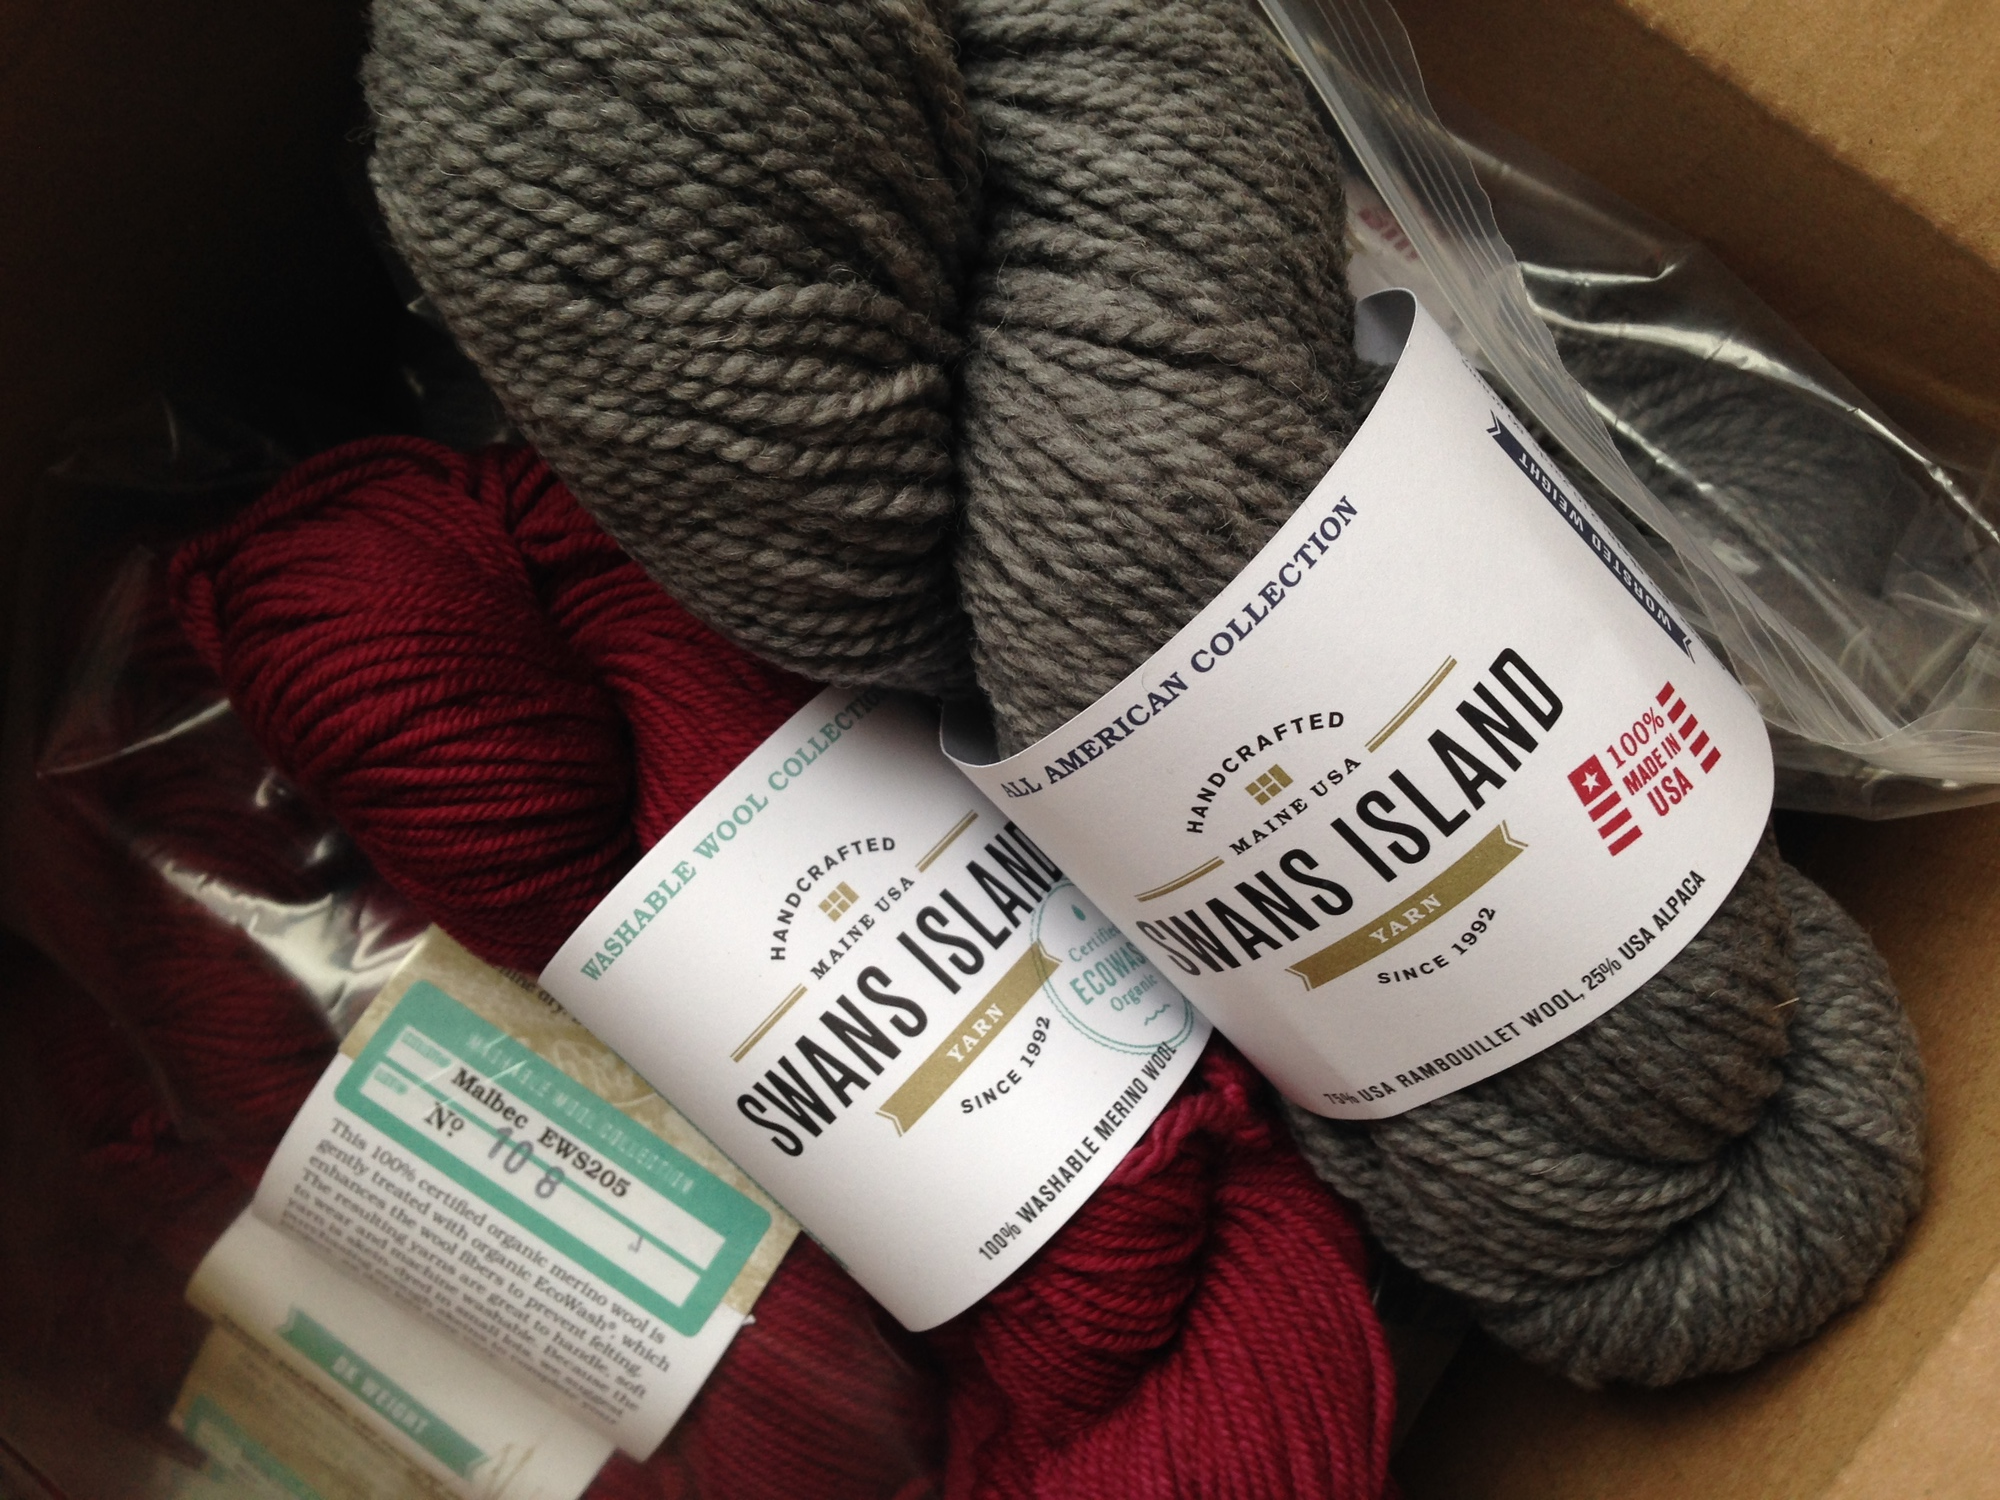 Box of Swans Island Yarn